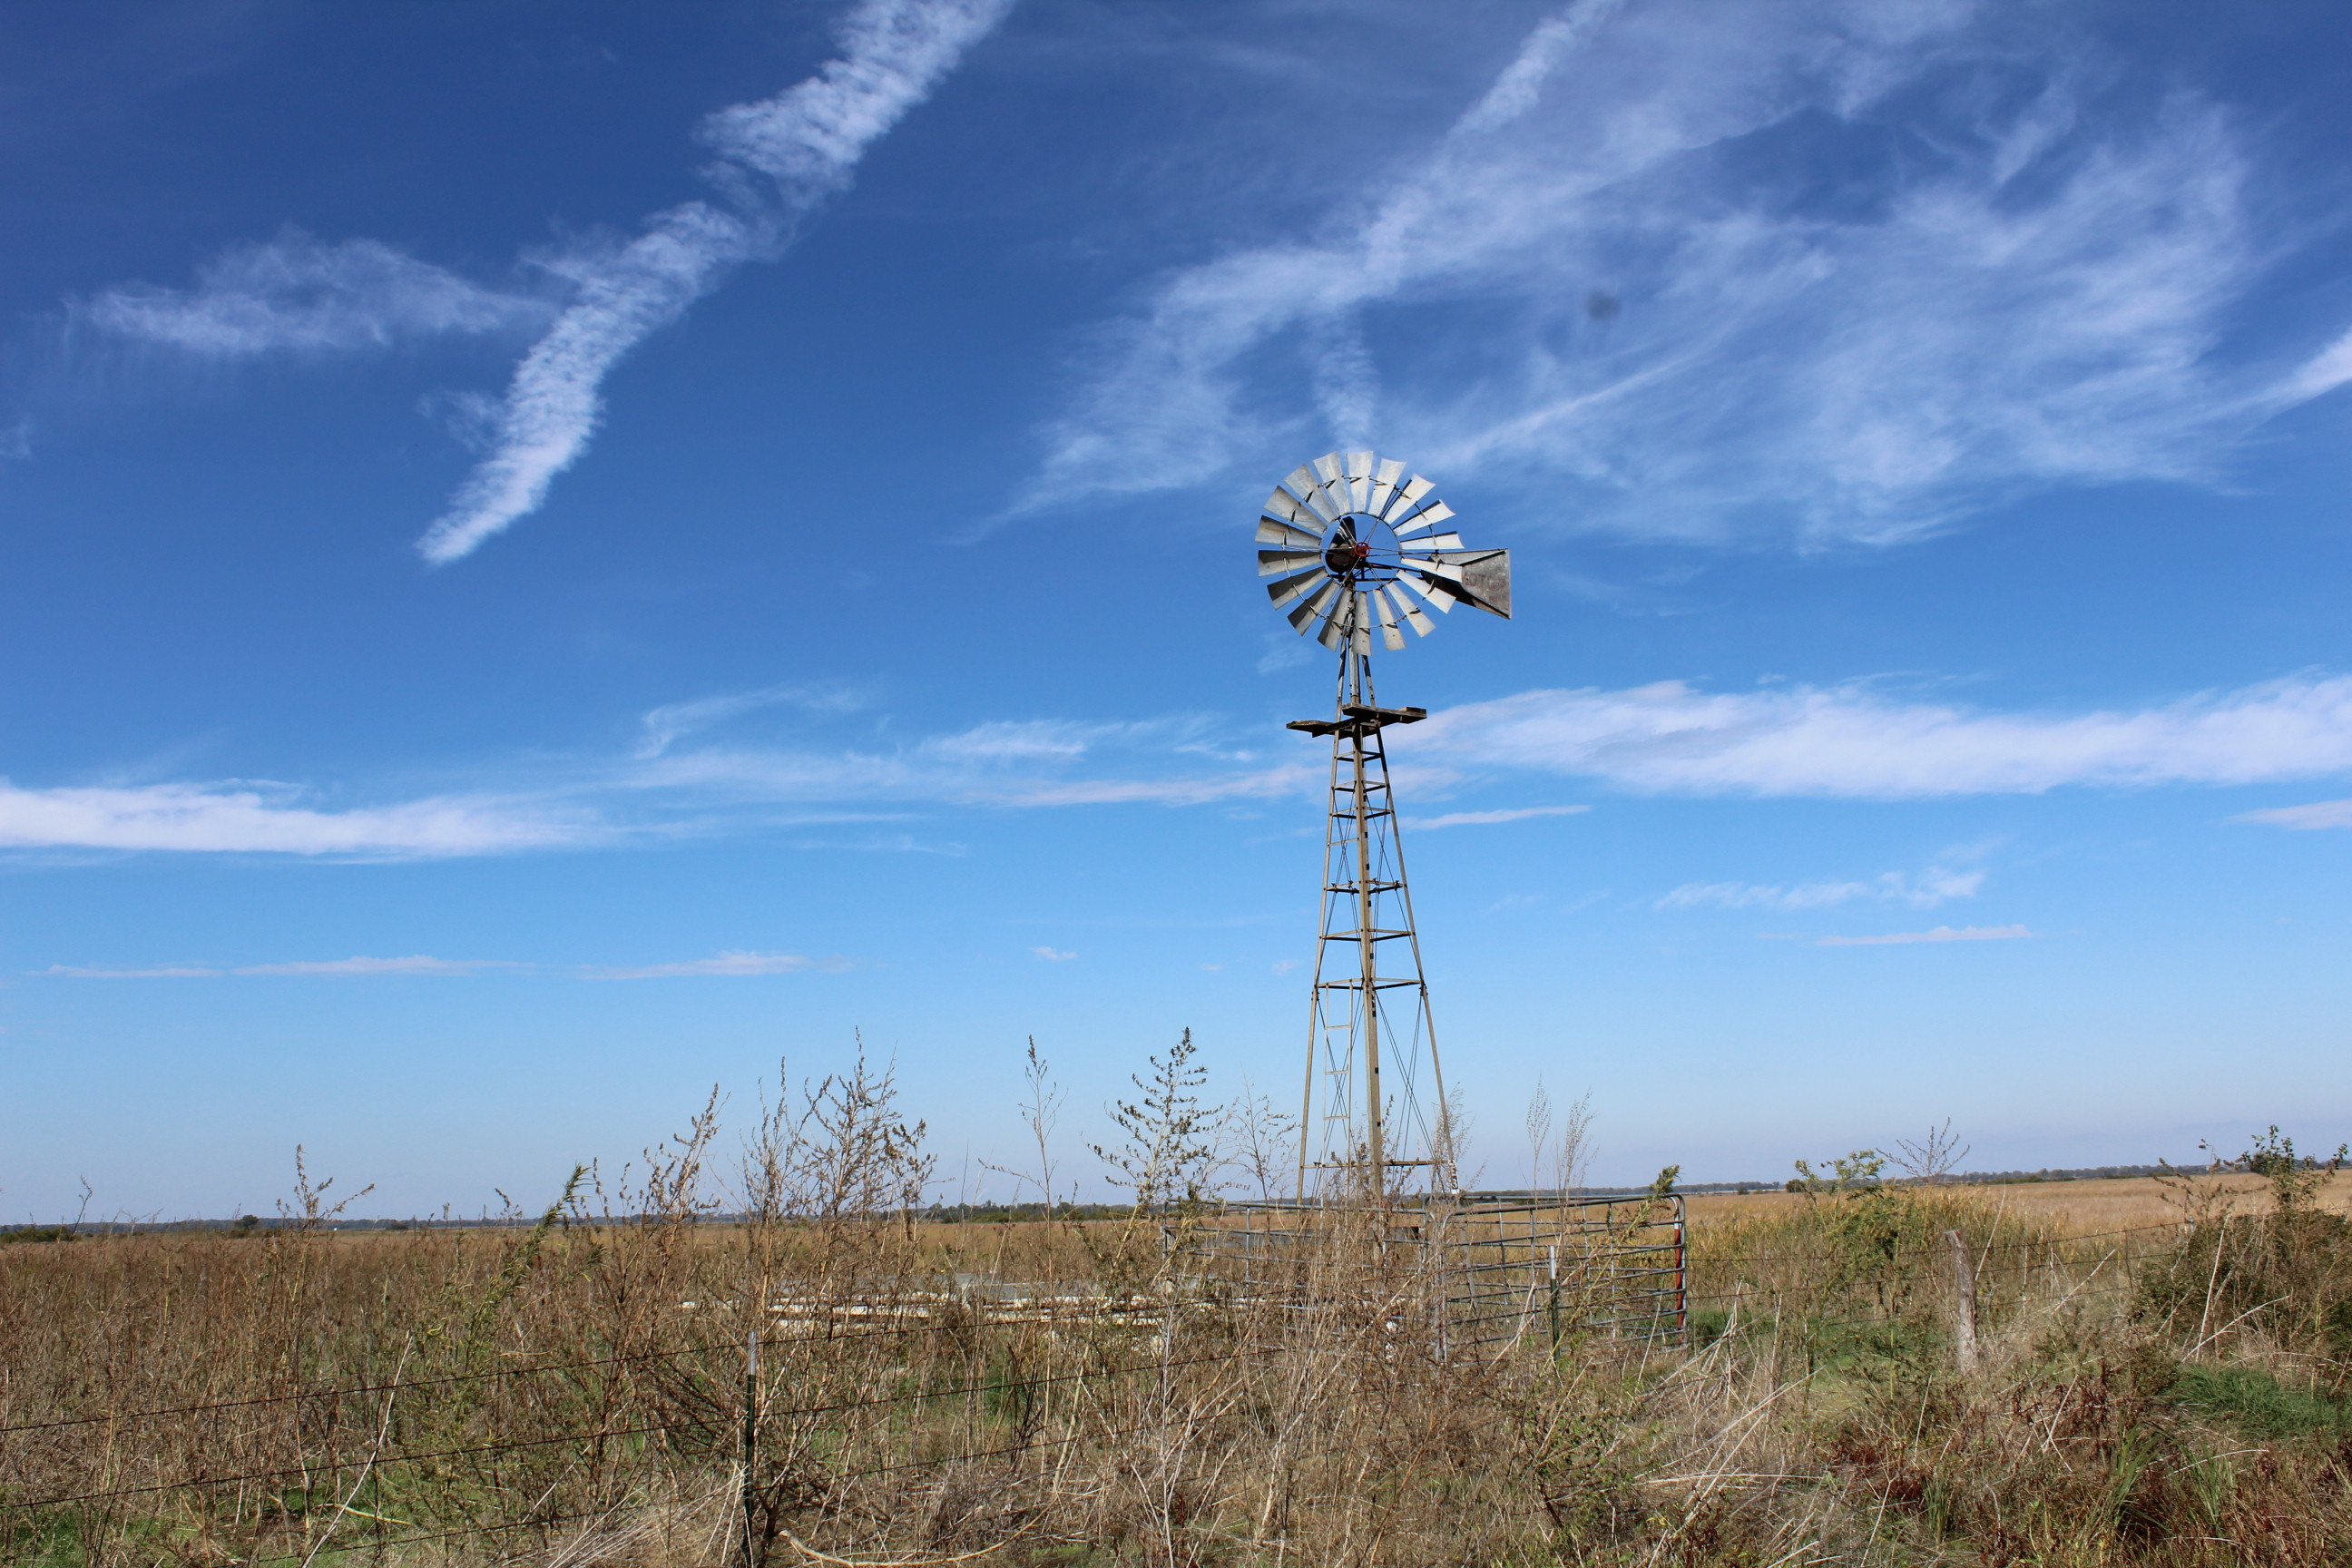 Windmill near Quivira National Wildlife Refuge in Stafford County. (Photo by J. Schafer)